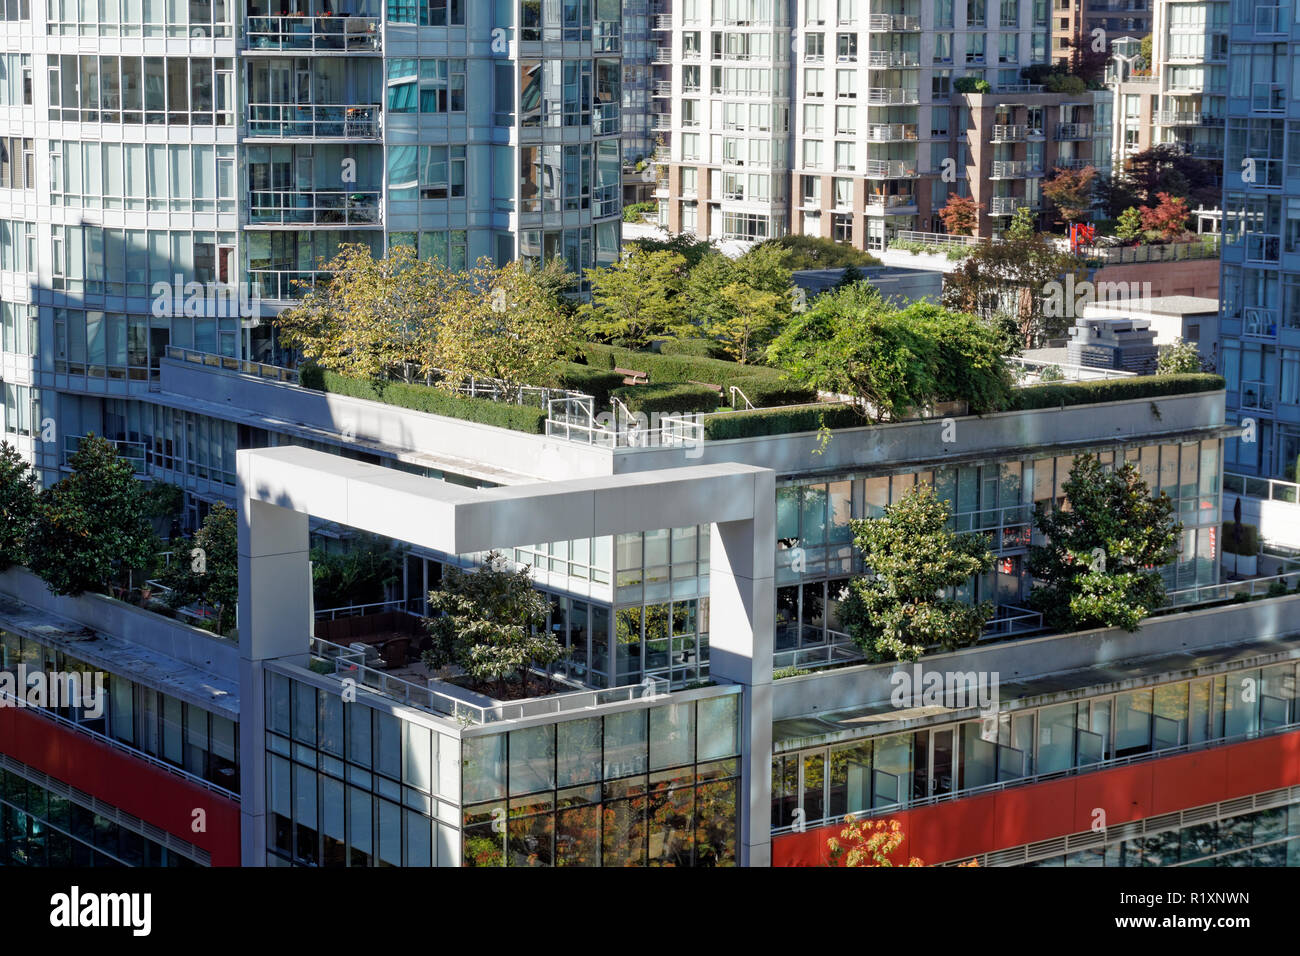 rooftop-gardens-on-modern-office-buildin